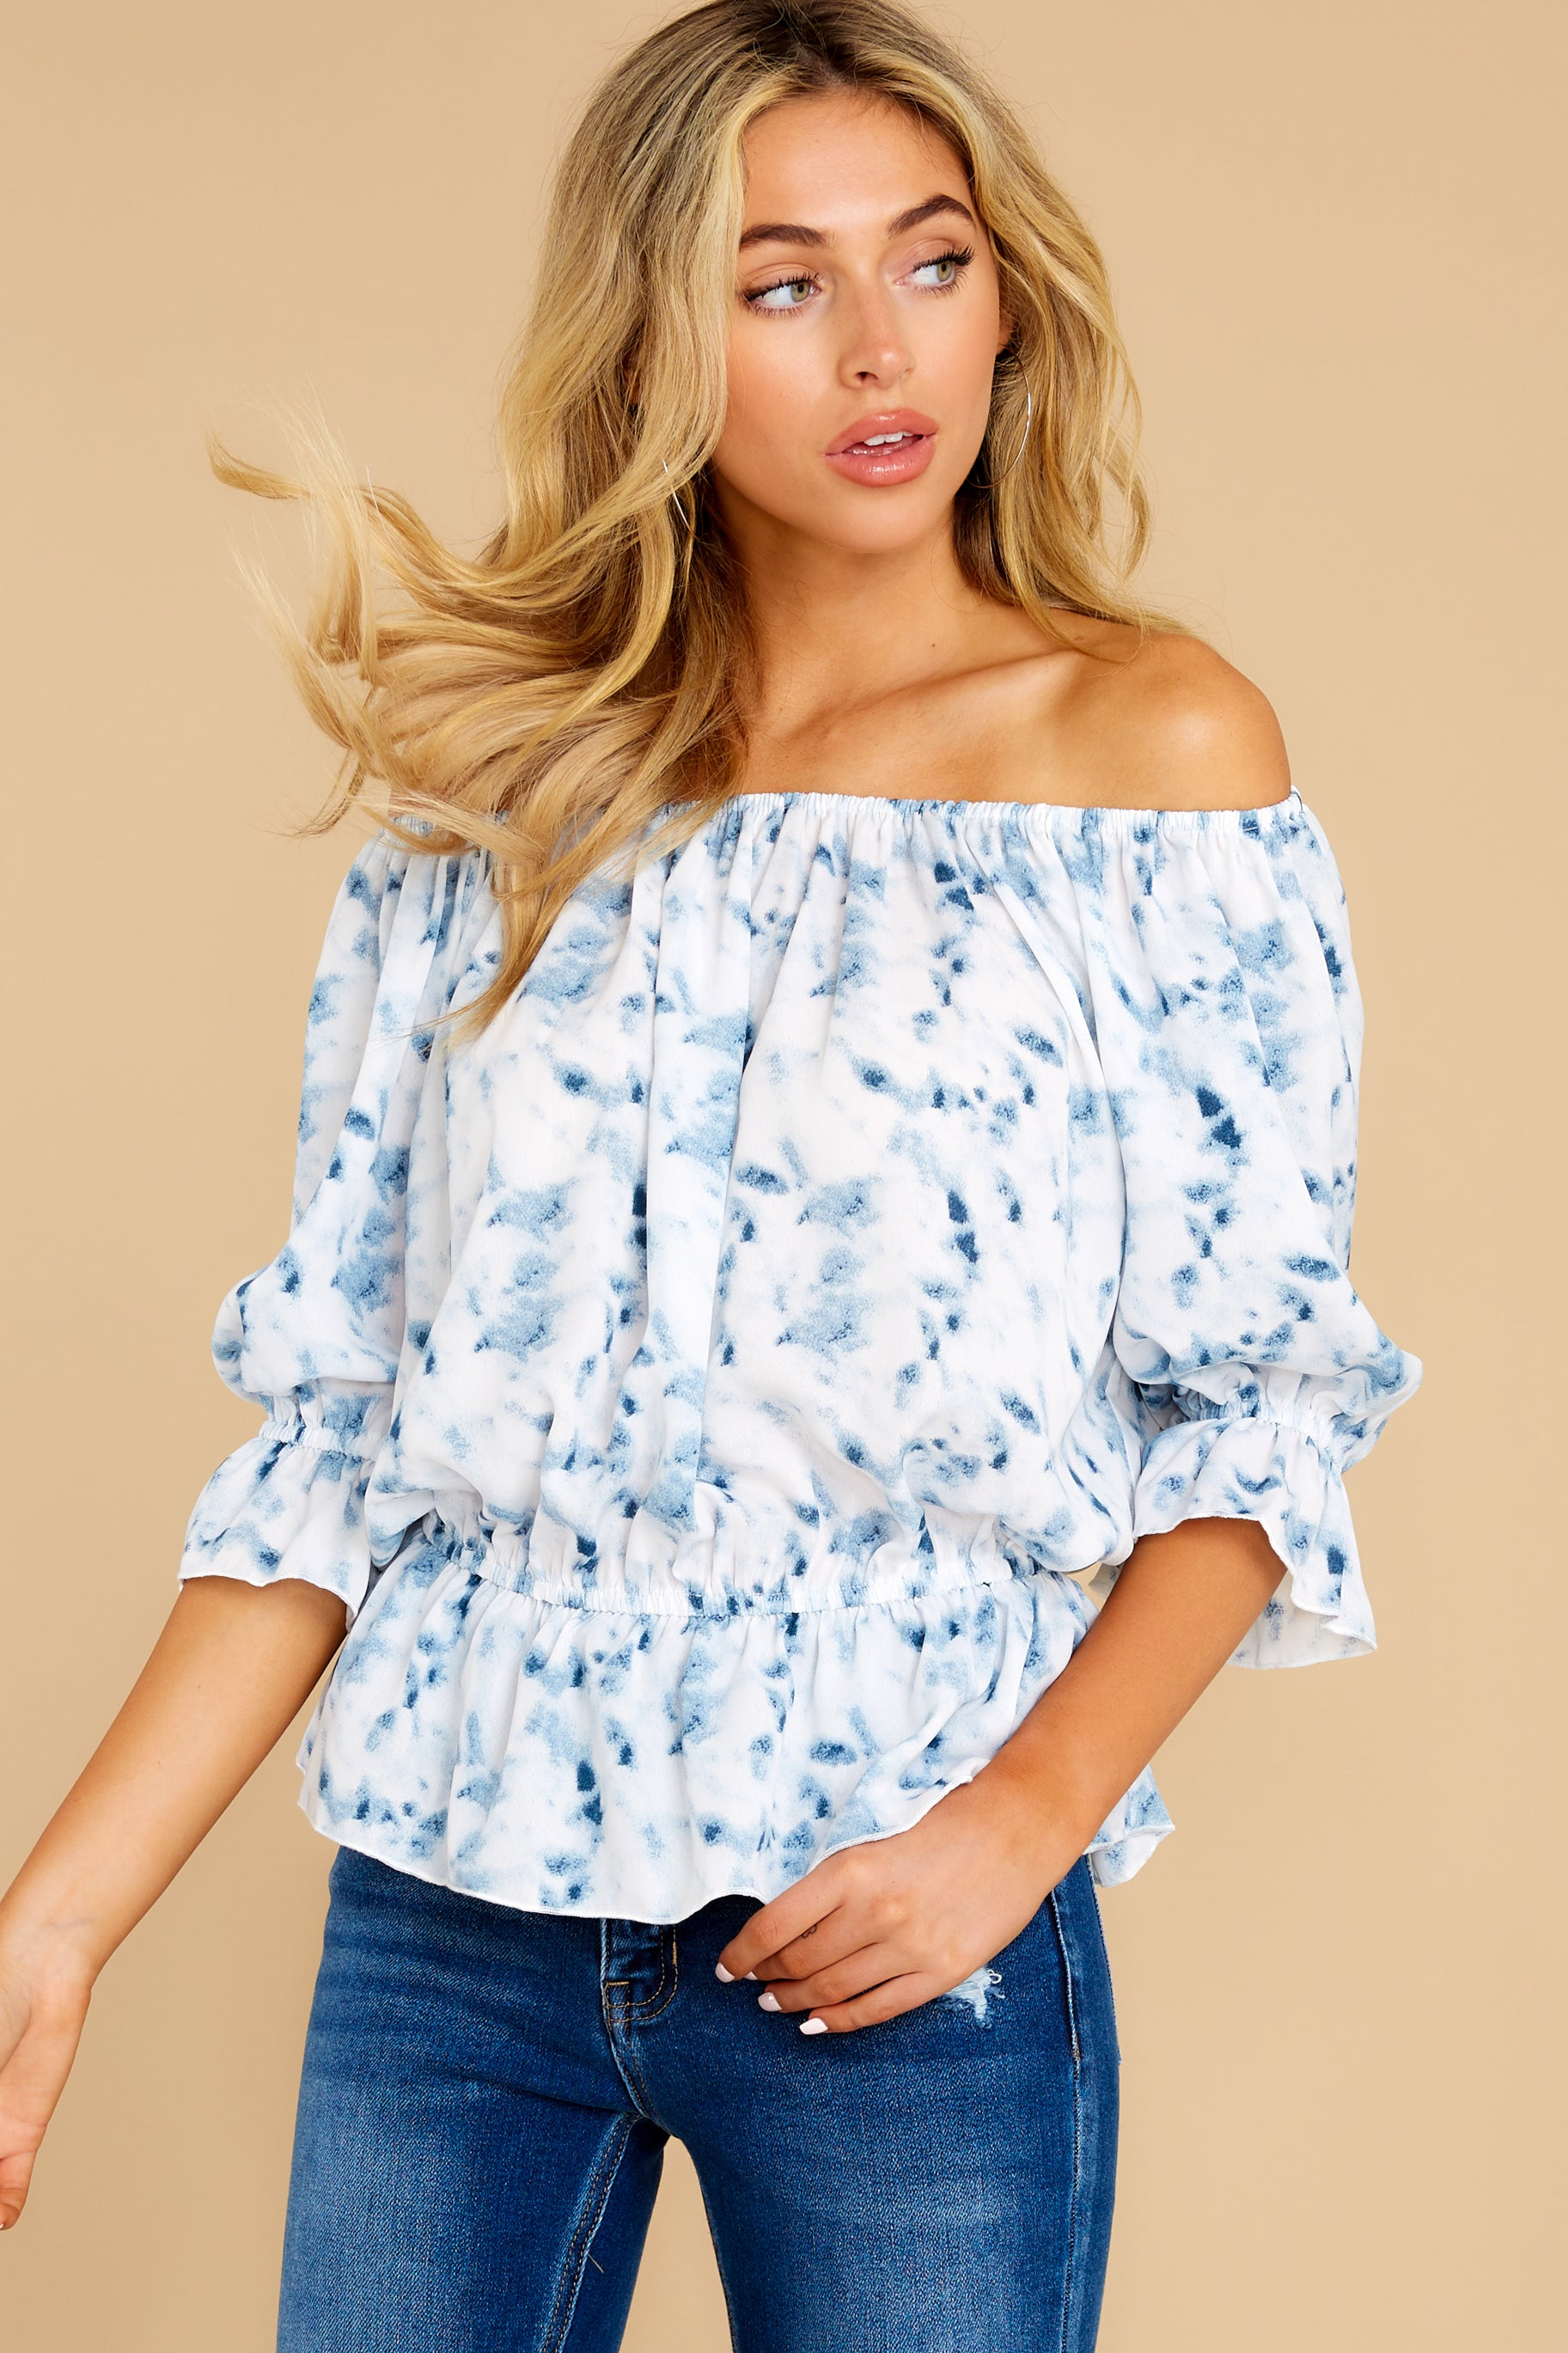 1 Up A Notch Blue Print Off The Shoulder Top at reddress.com